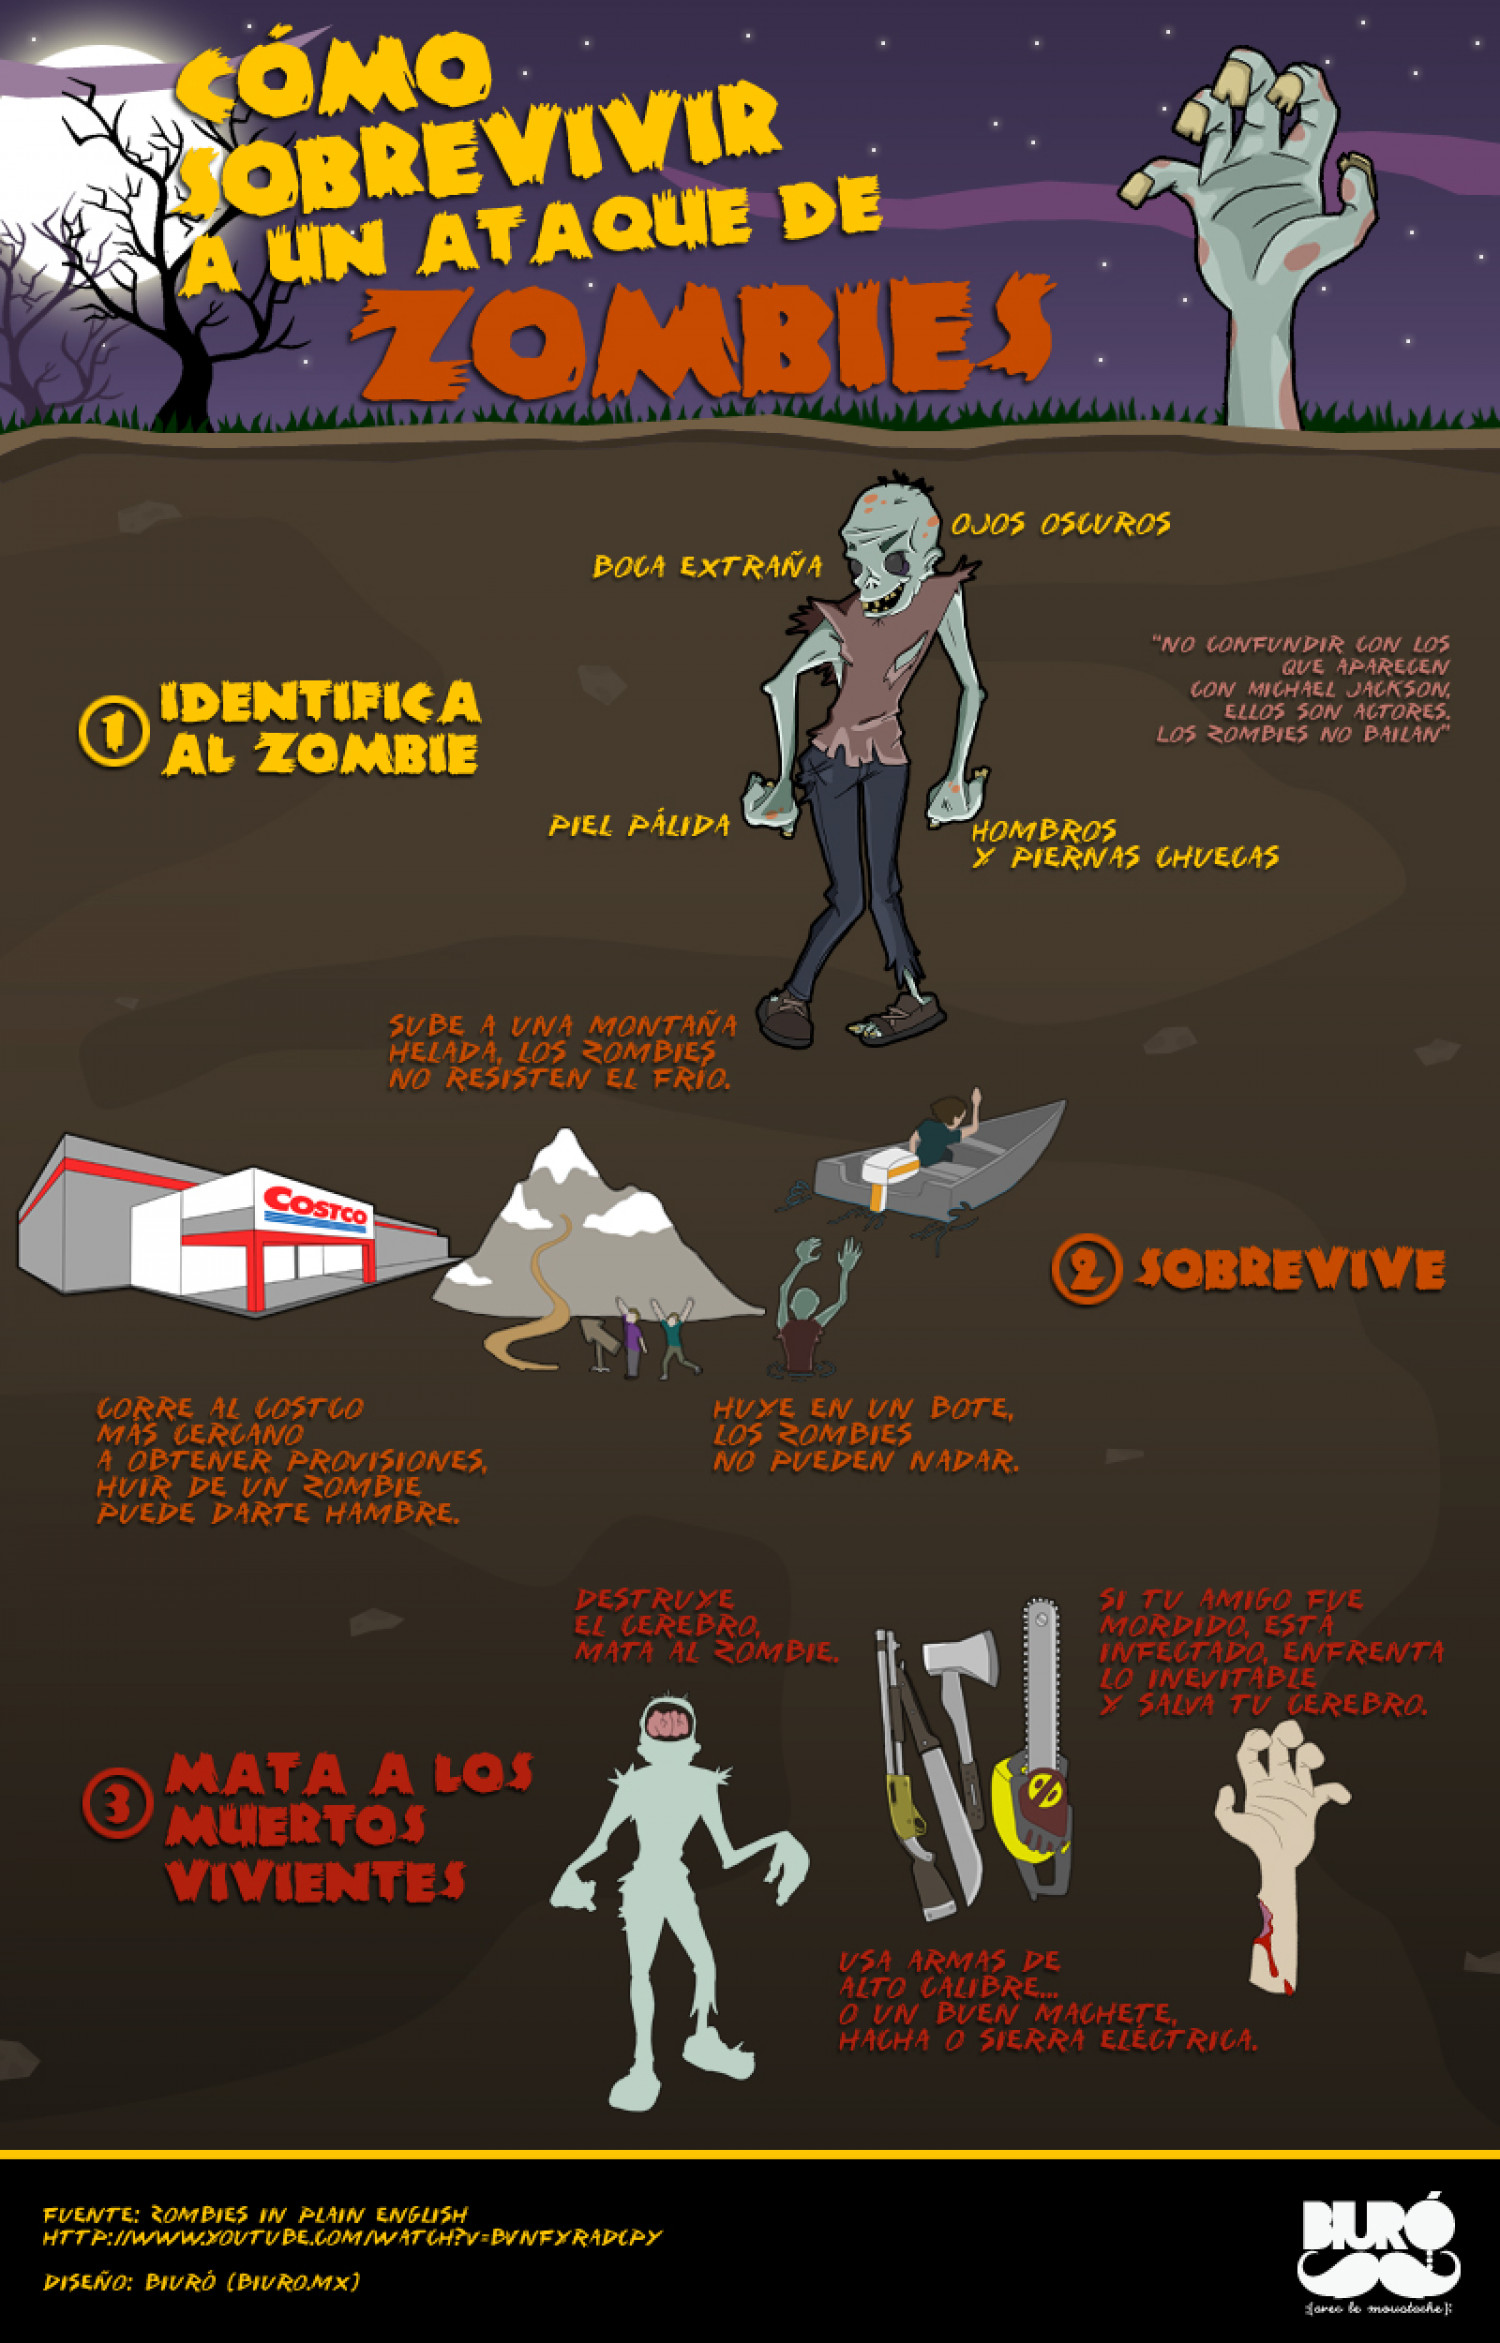 How to Survive a Zombie Attack Infographic